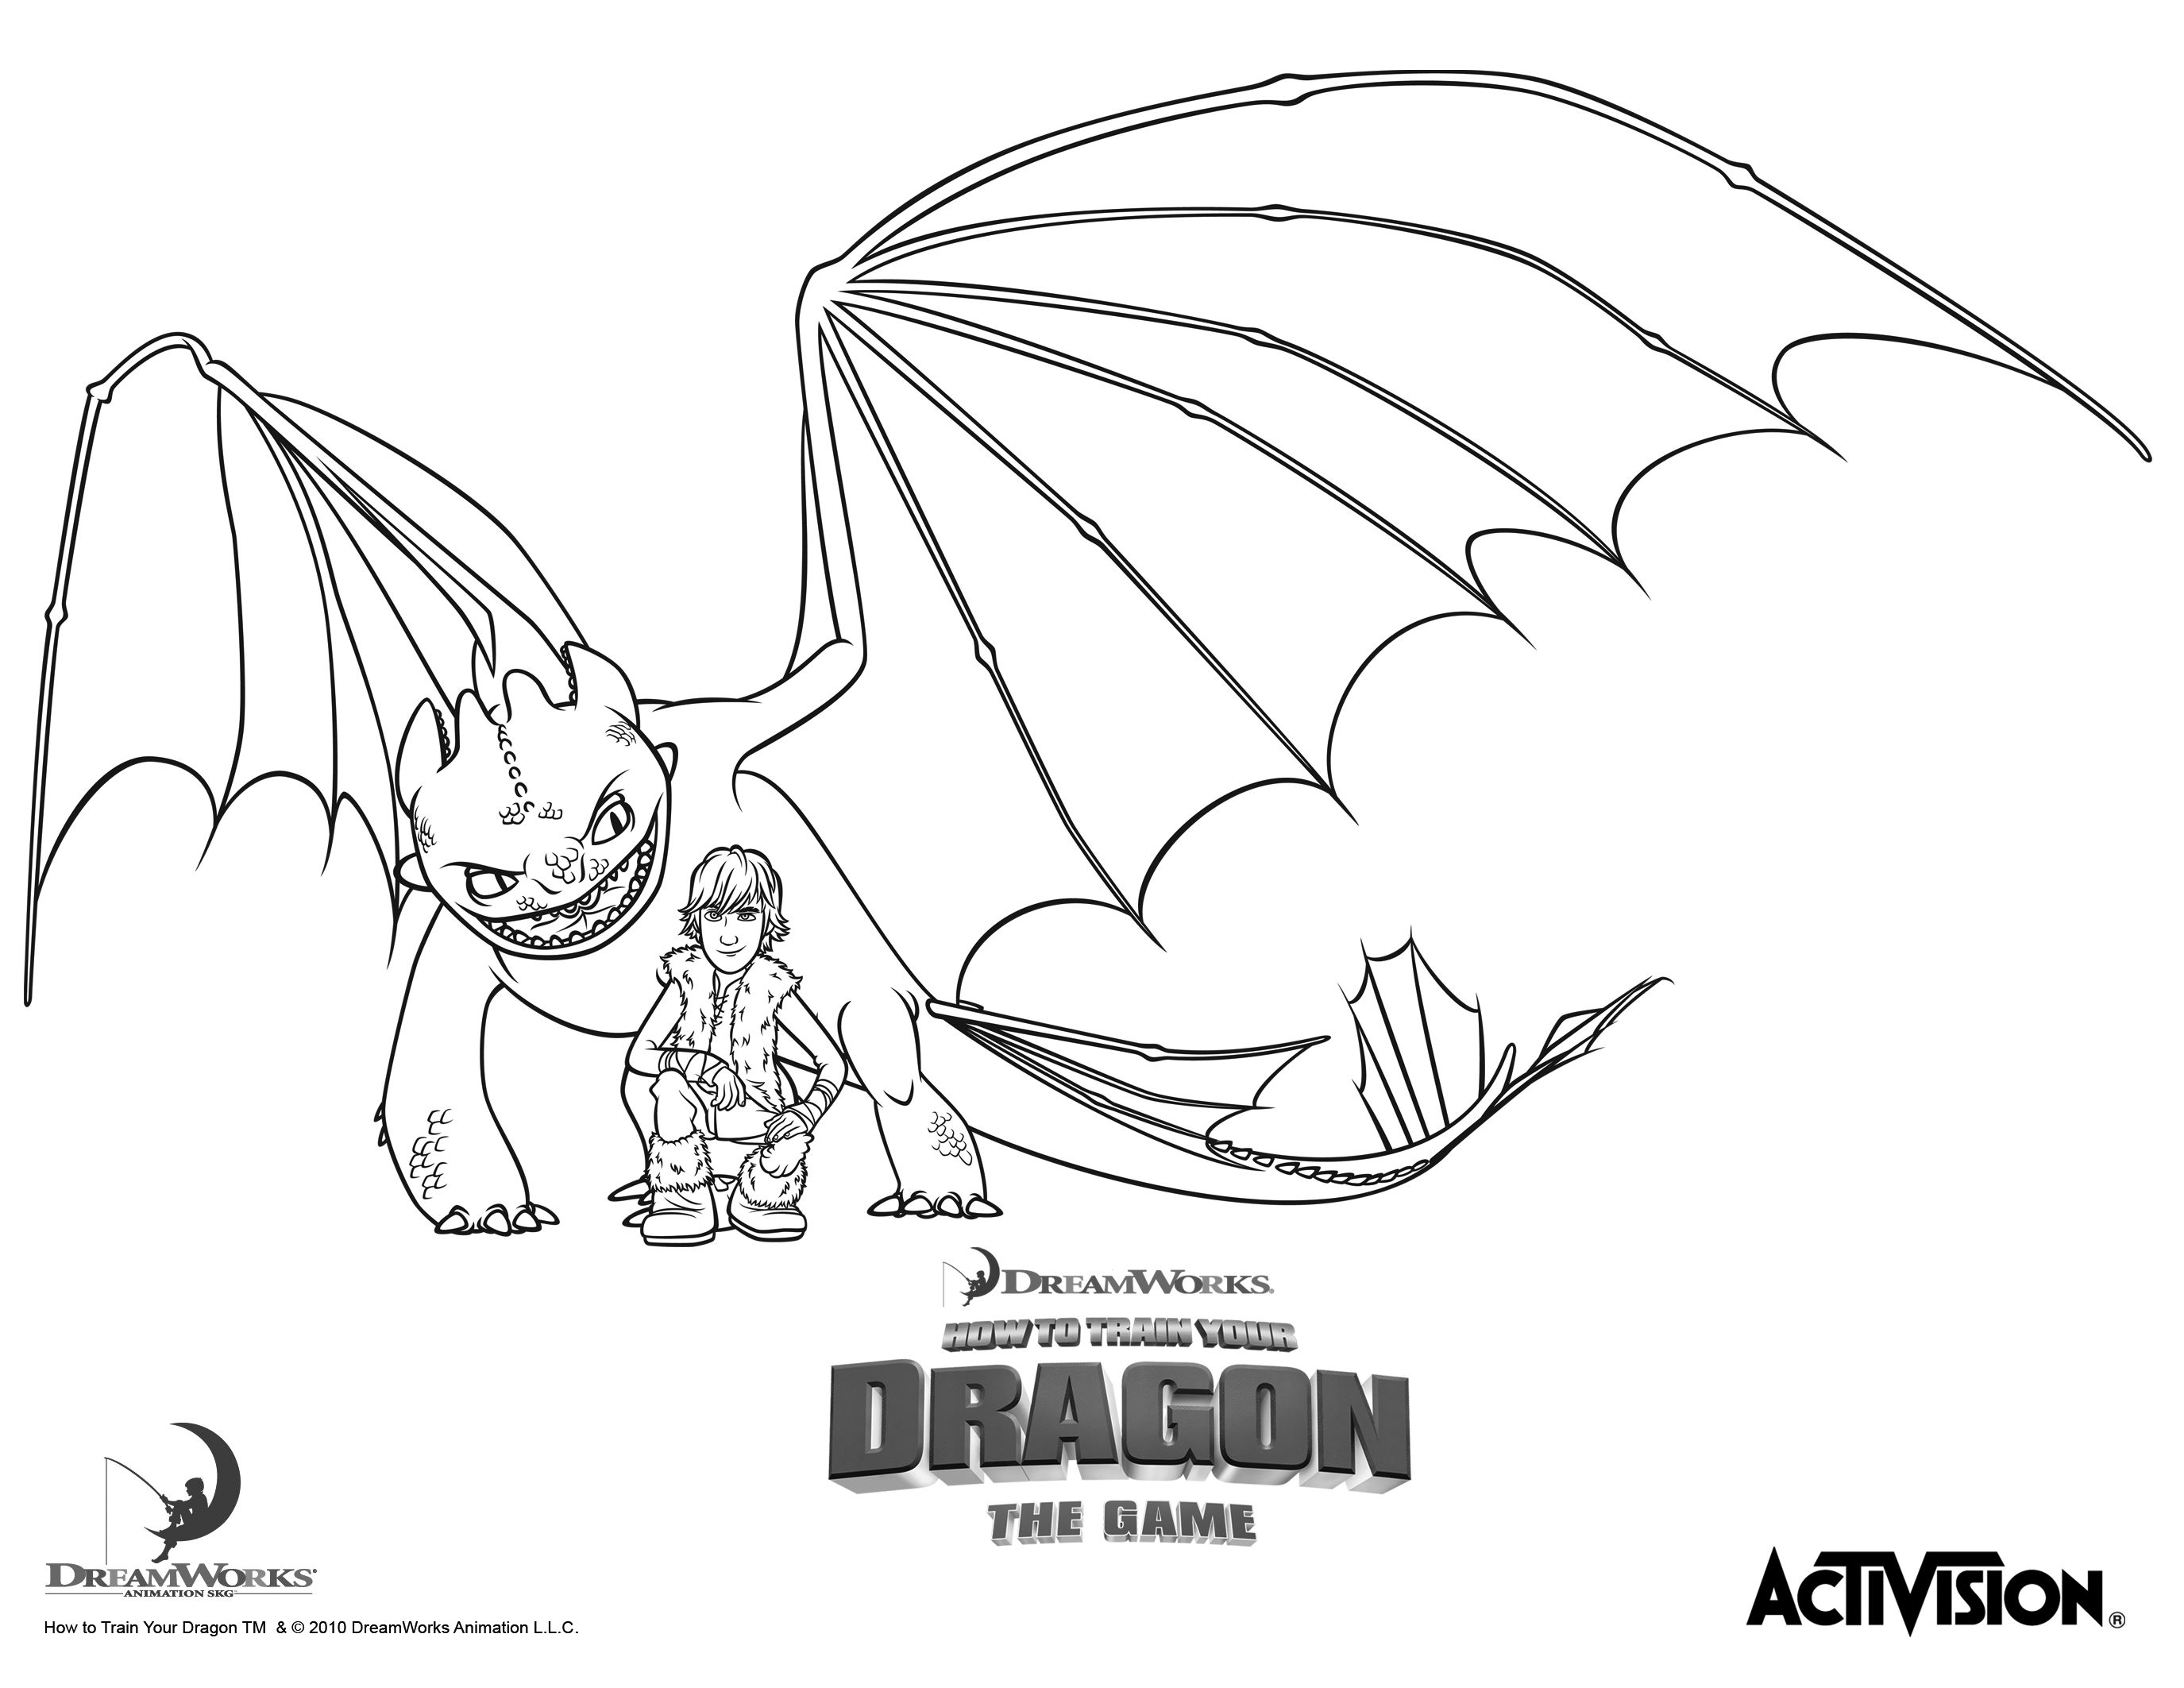 hiccup and night fury how to train your dragon coloring pages for kids